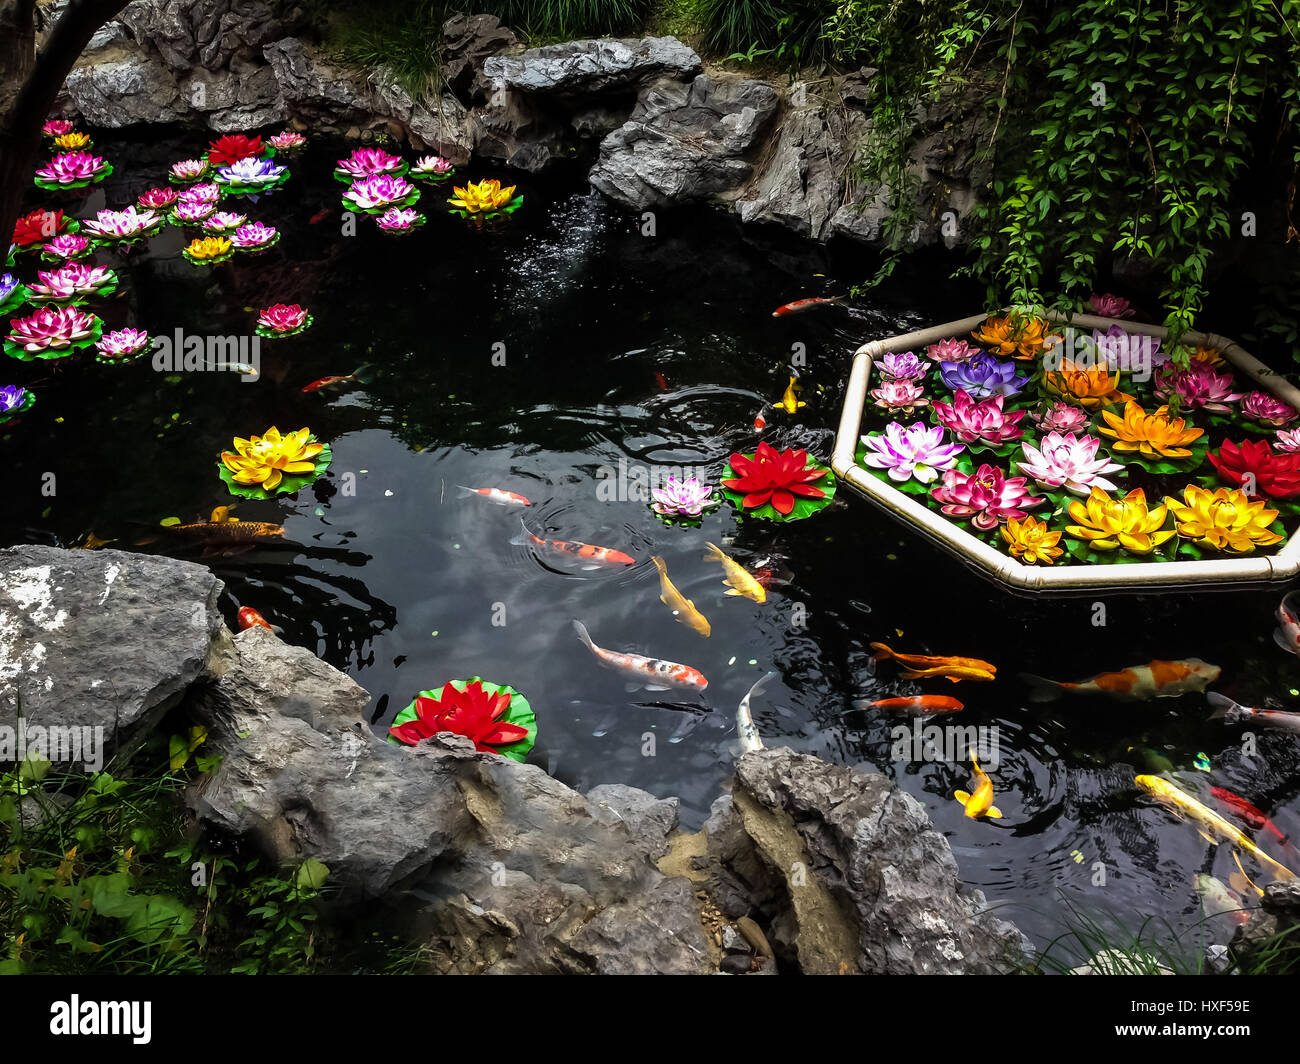 Koi Fish And Flowers On A Pond Shanghai China Stock Photo Royalty Free Image 136787098 Alamy